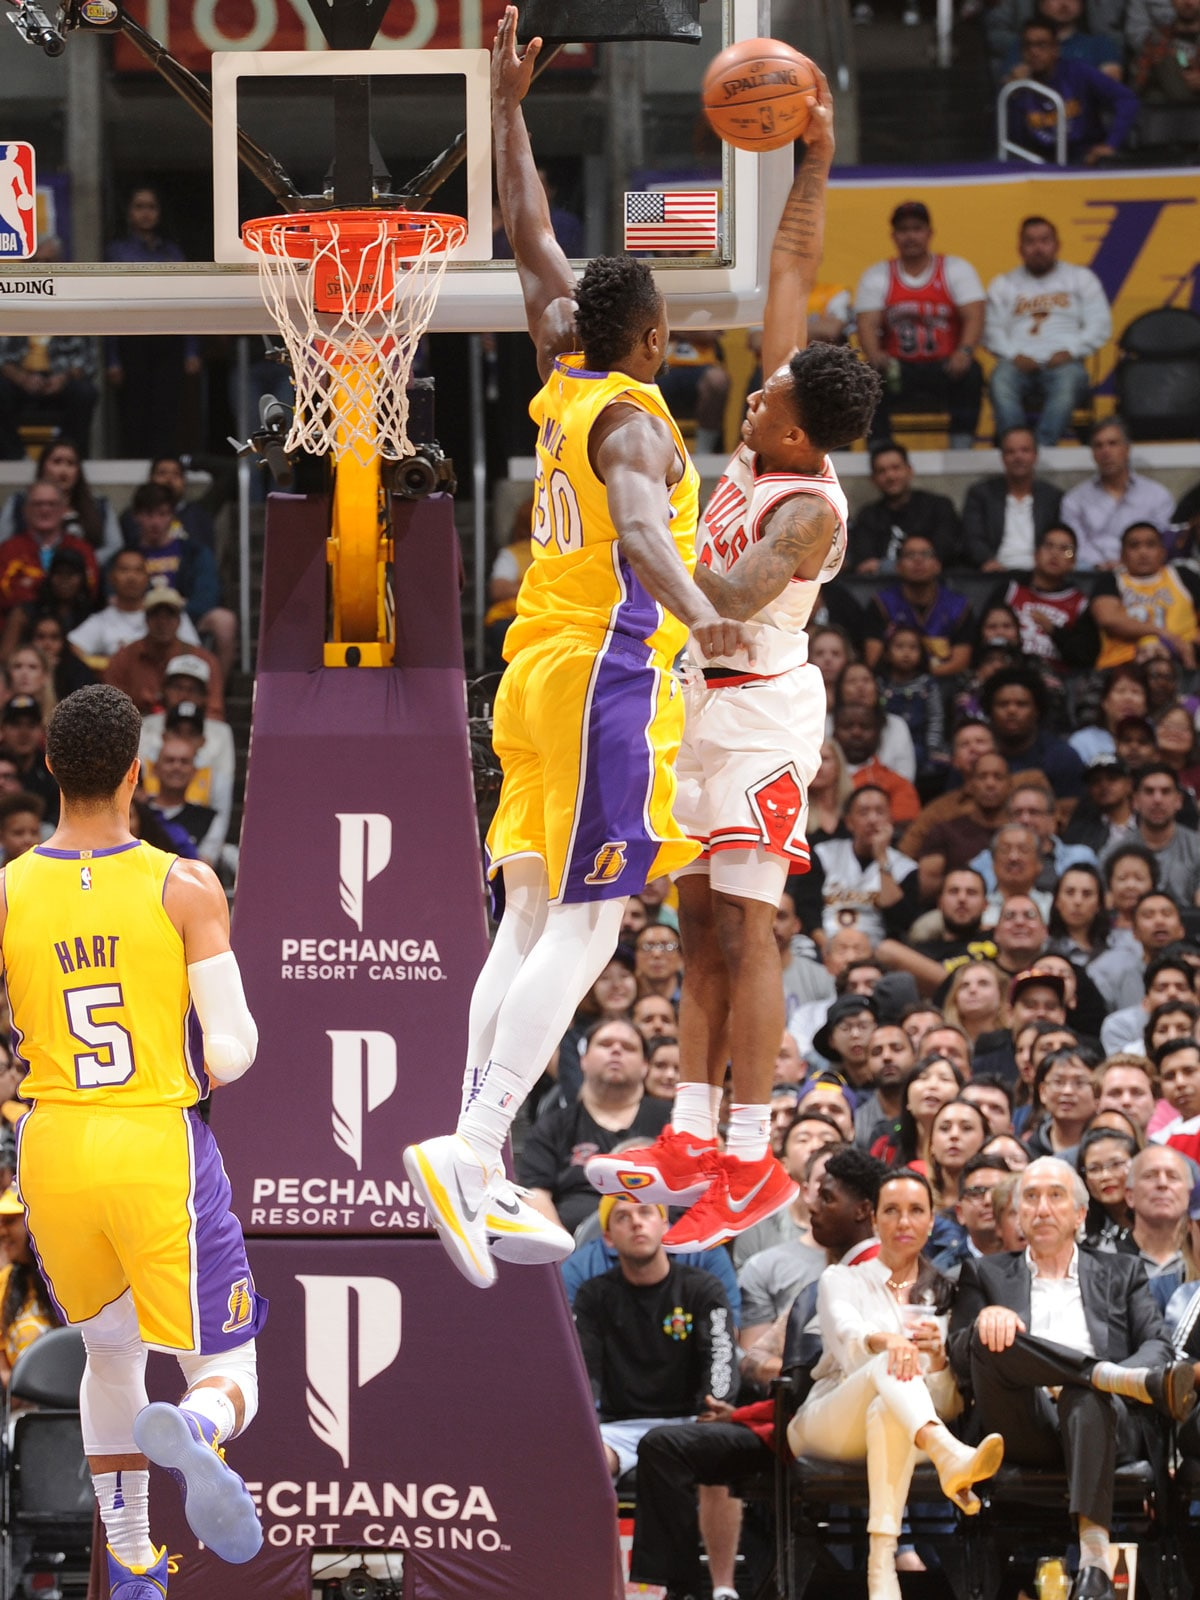 LOS ANGELES, CA - NOVEMBER 21: Antonio Blakeney #9 of the Chicago Bulls dunks against the Los Angeles Lakers on November 21, 2017 at STAPLES Center in Los Angeles, California.